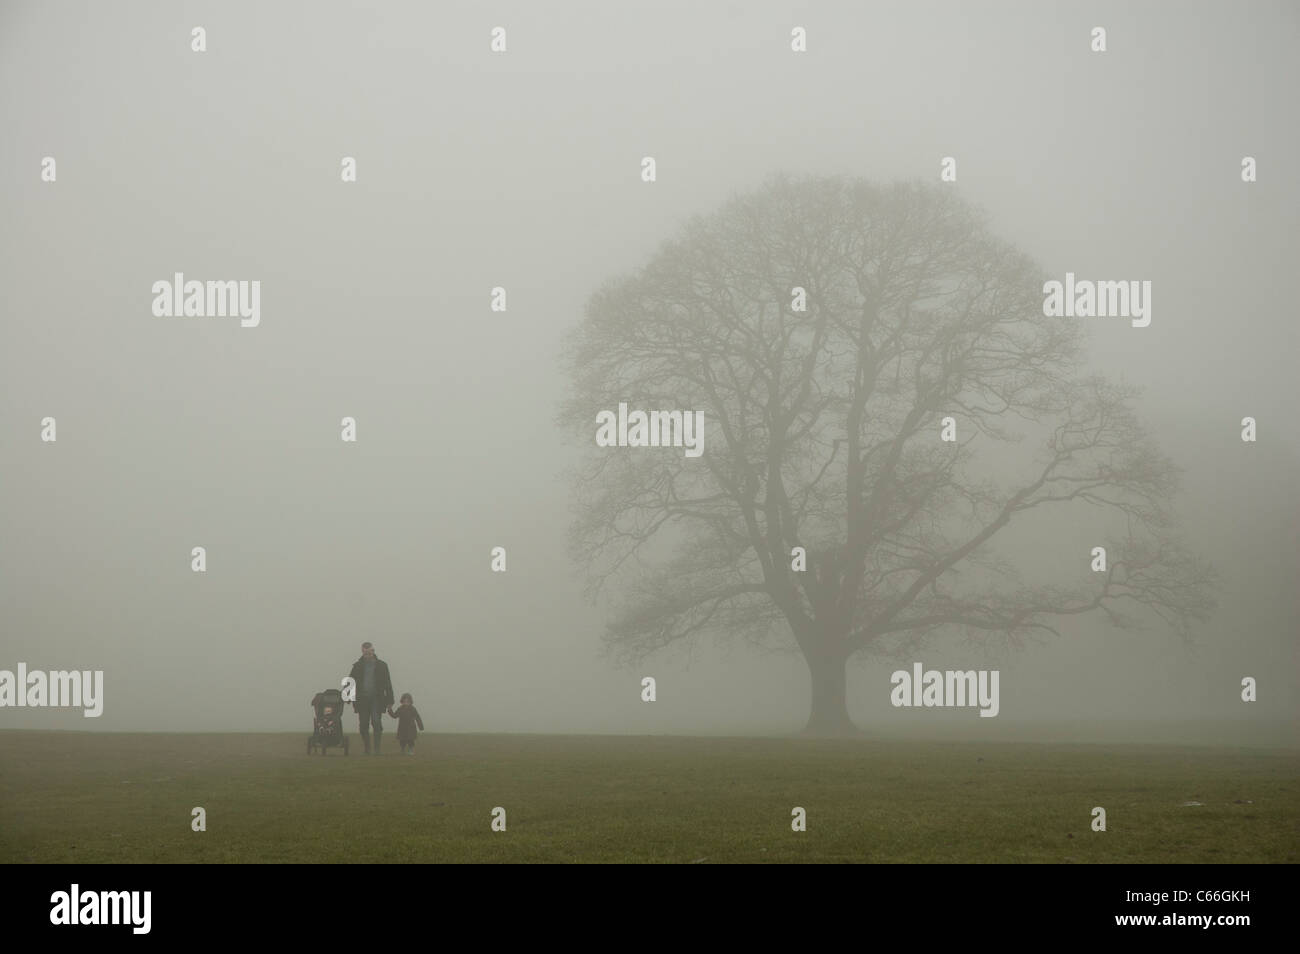 Father walking with his children in fog - Stock Image